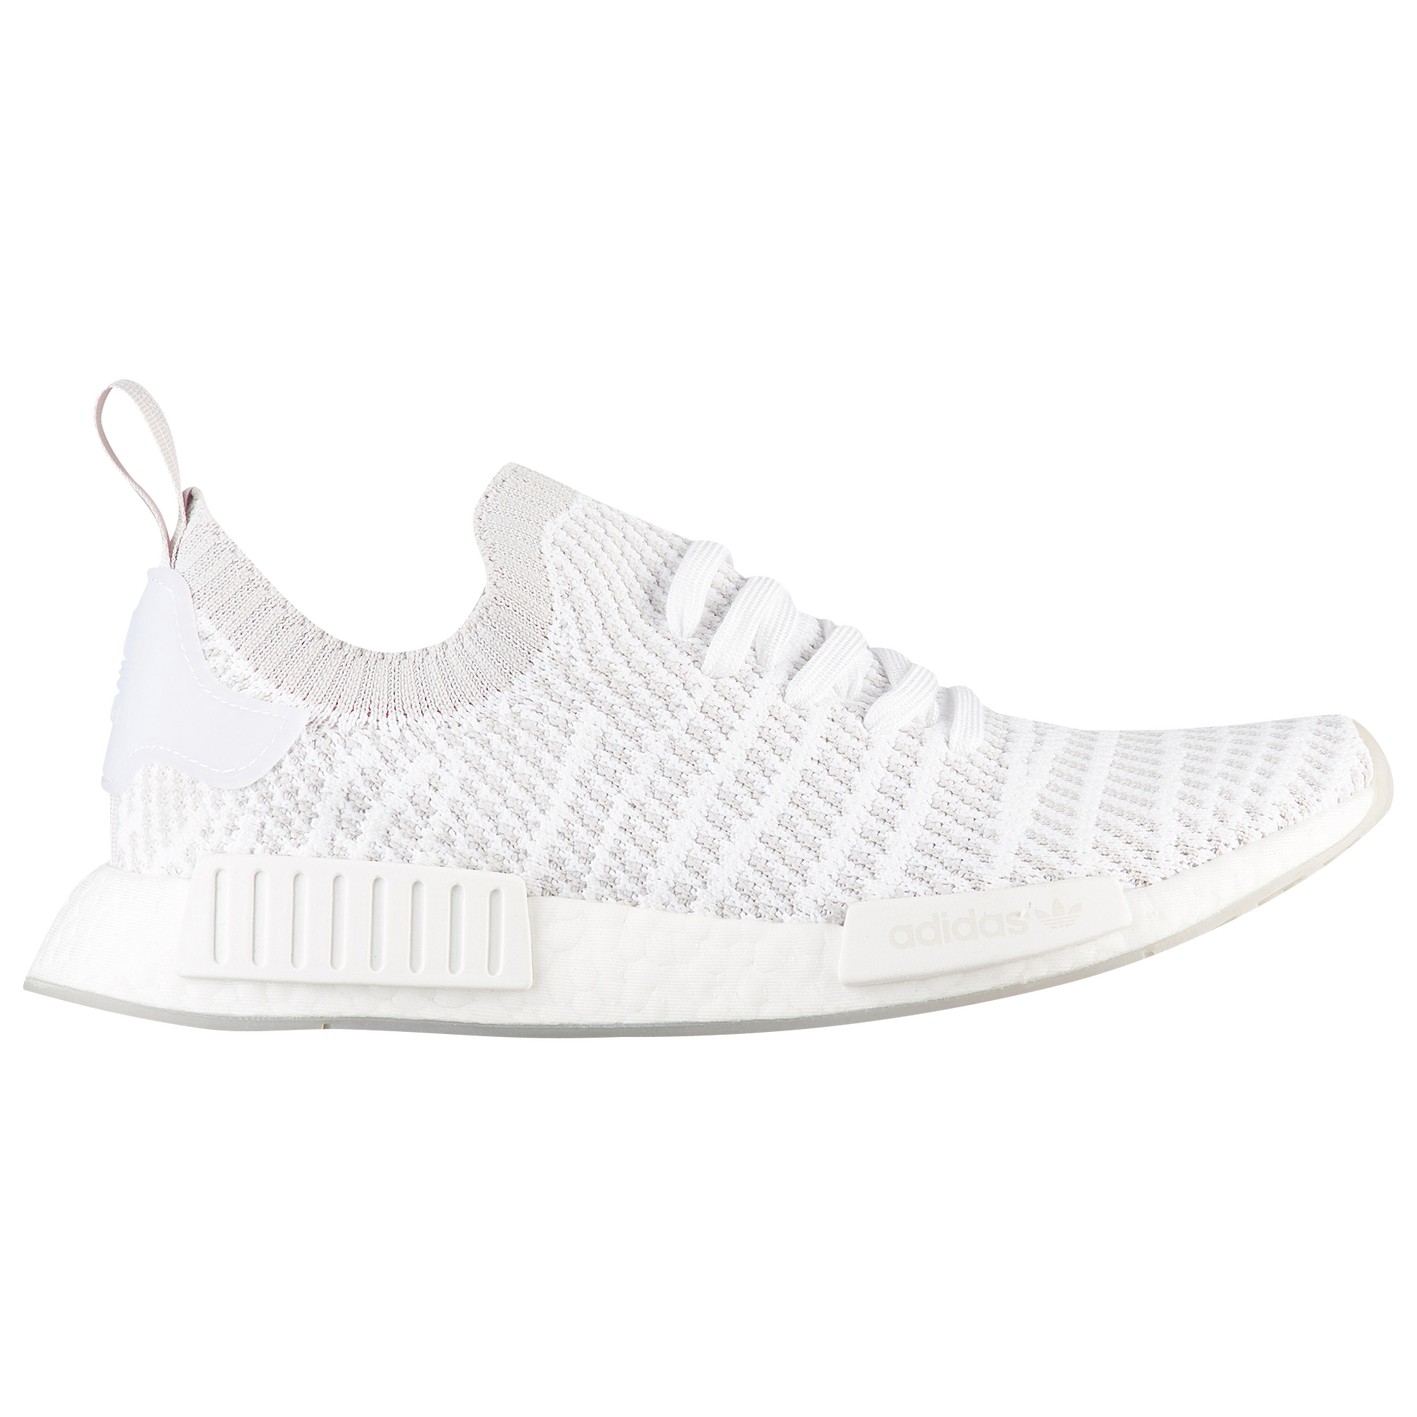 820ab5bd8 adidas Originals NMD R1 STLT Primeknit - Men s - Casual - Shoes ...